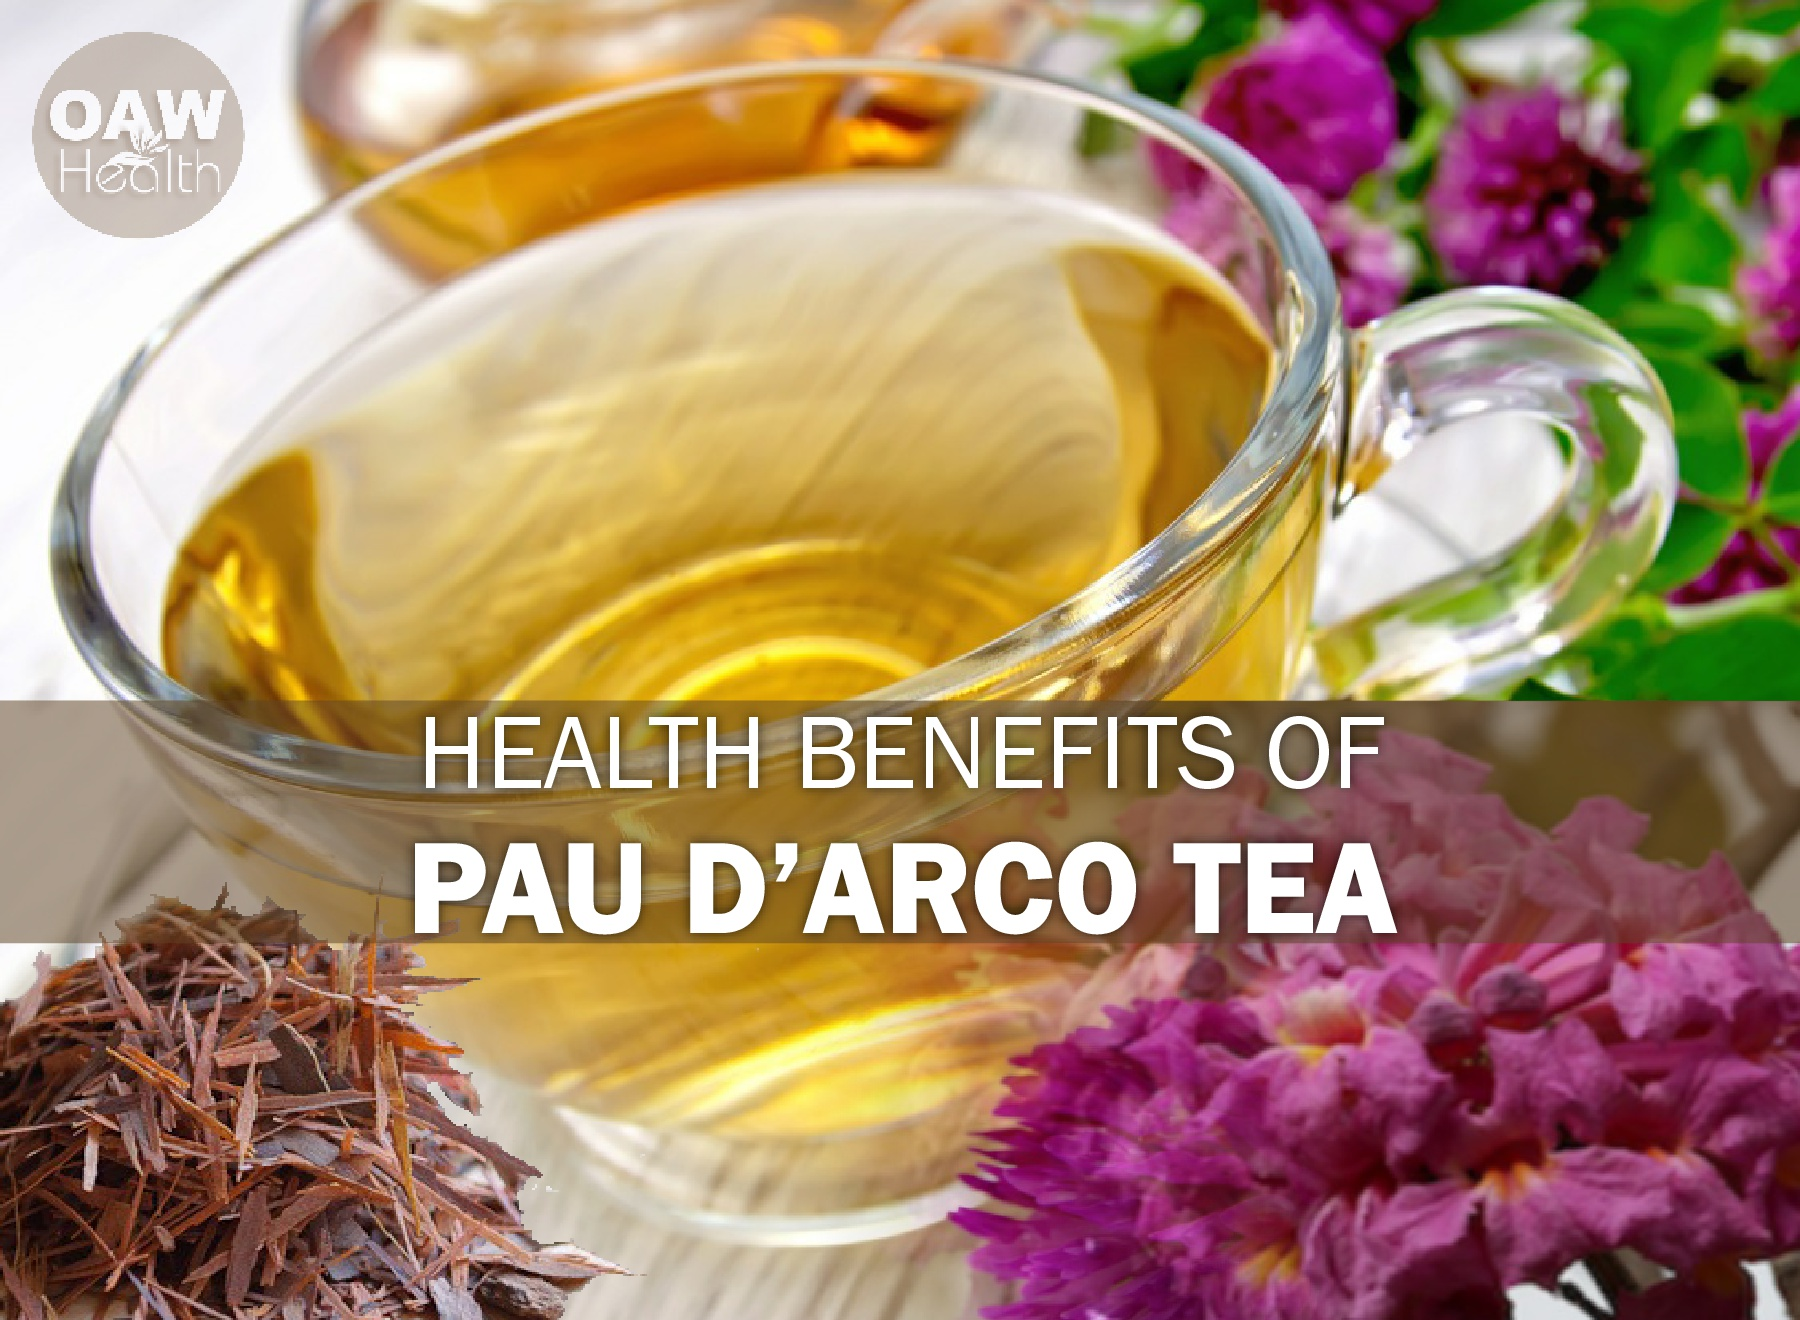 Important Health Benefits of Pau d'Arco Tea